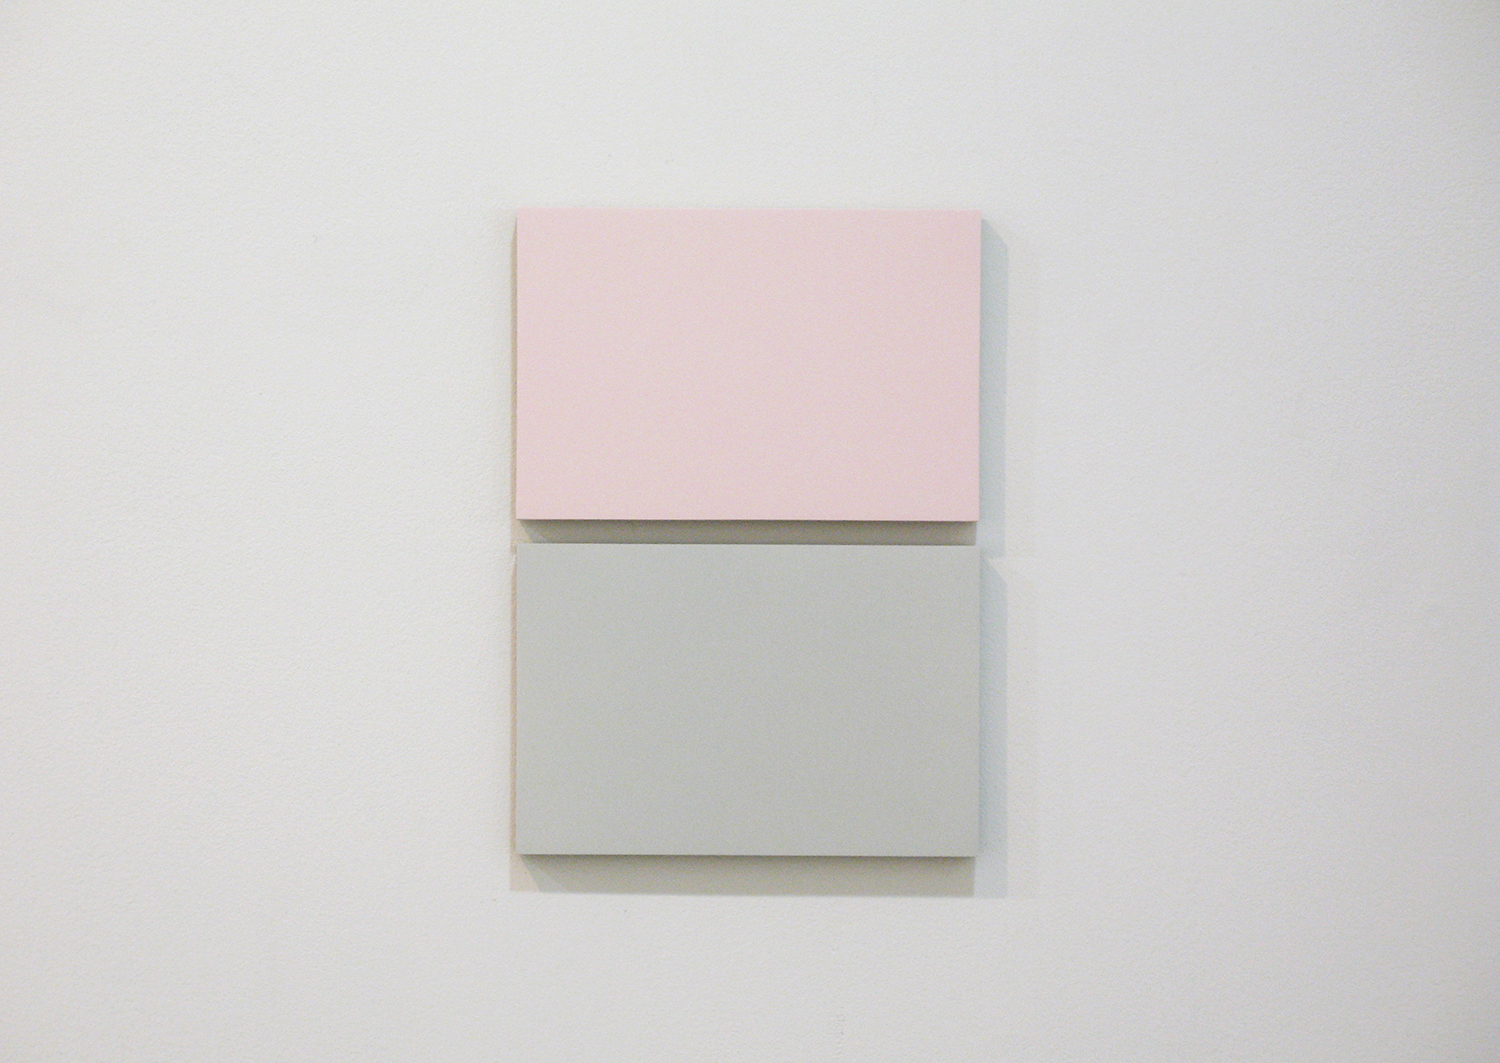 2col-09(pink & gray)casein, pigment on canvas & aluminum (2 parts, 10 x 15 cm each)